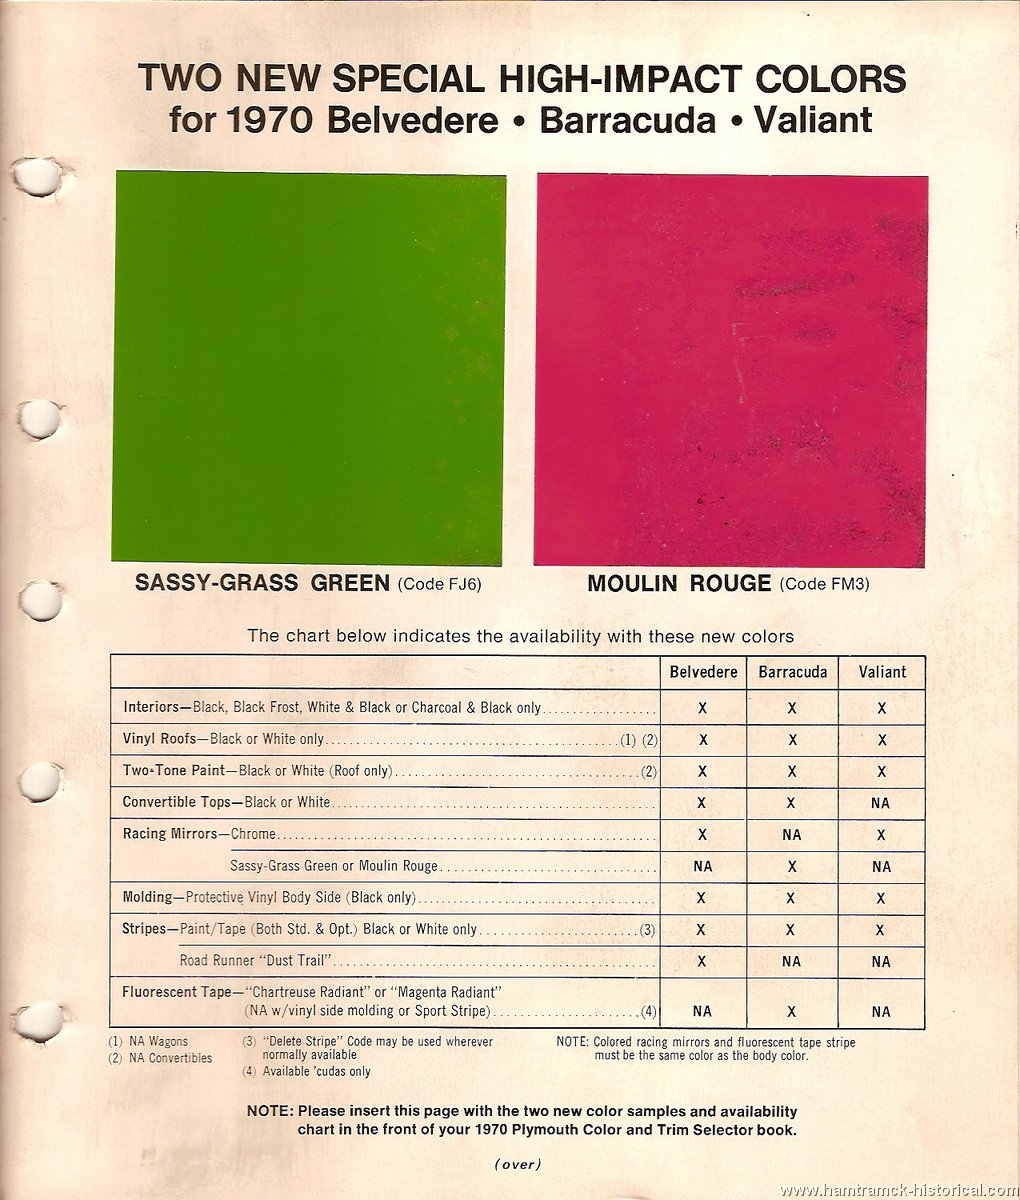 The 1970 Hamtramck Registry Plymouth Color Trim Book 2014 Ford Paint Chart Image 70 Preview0007